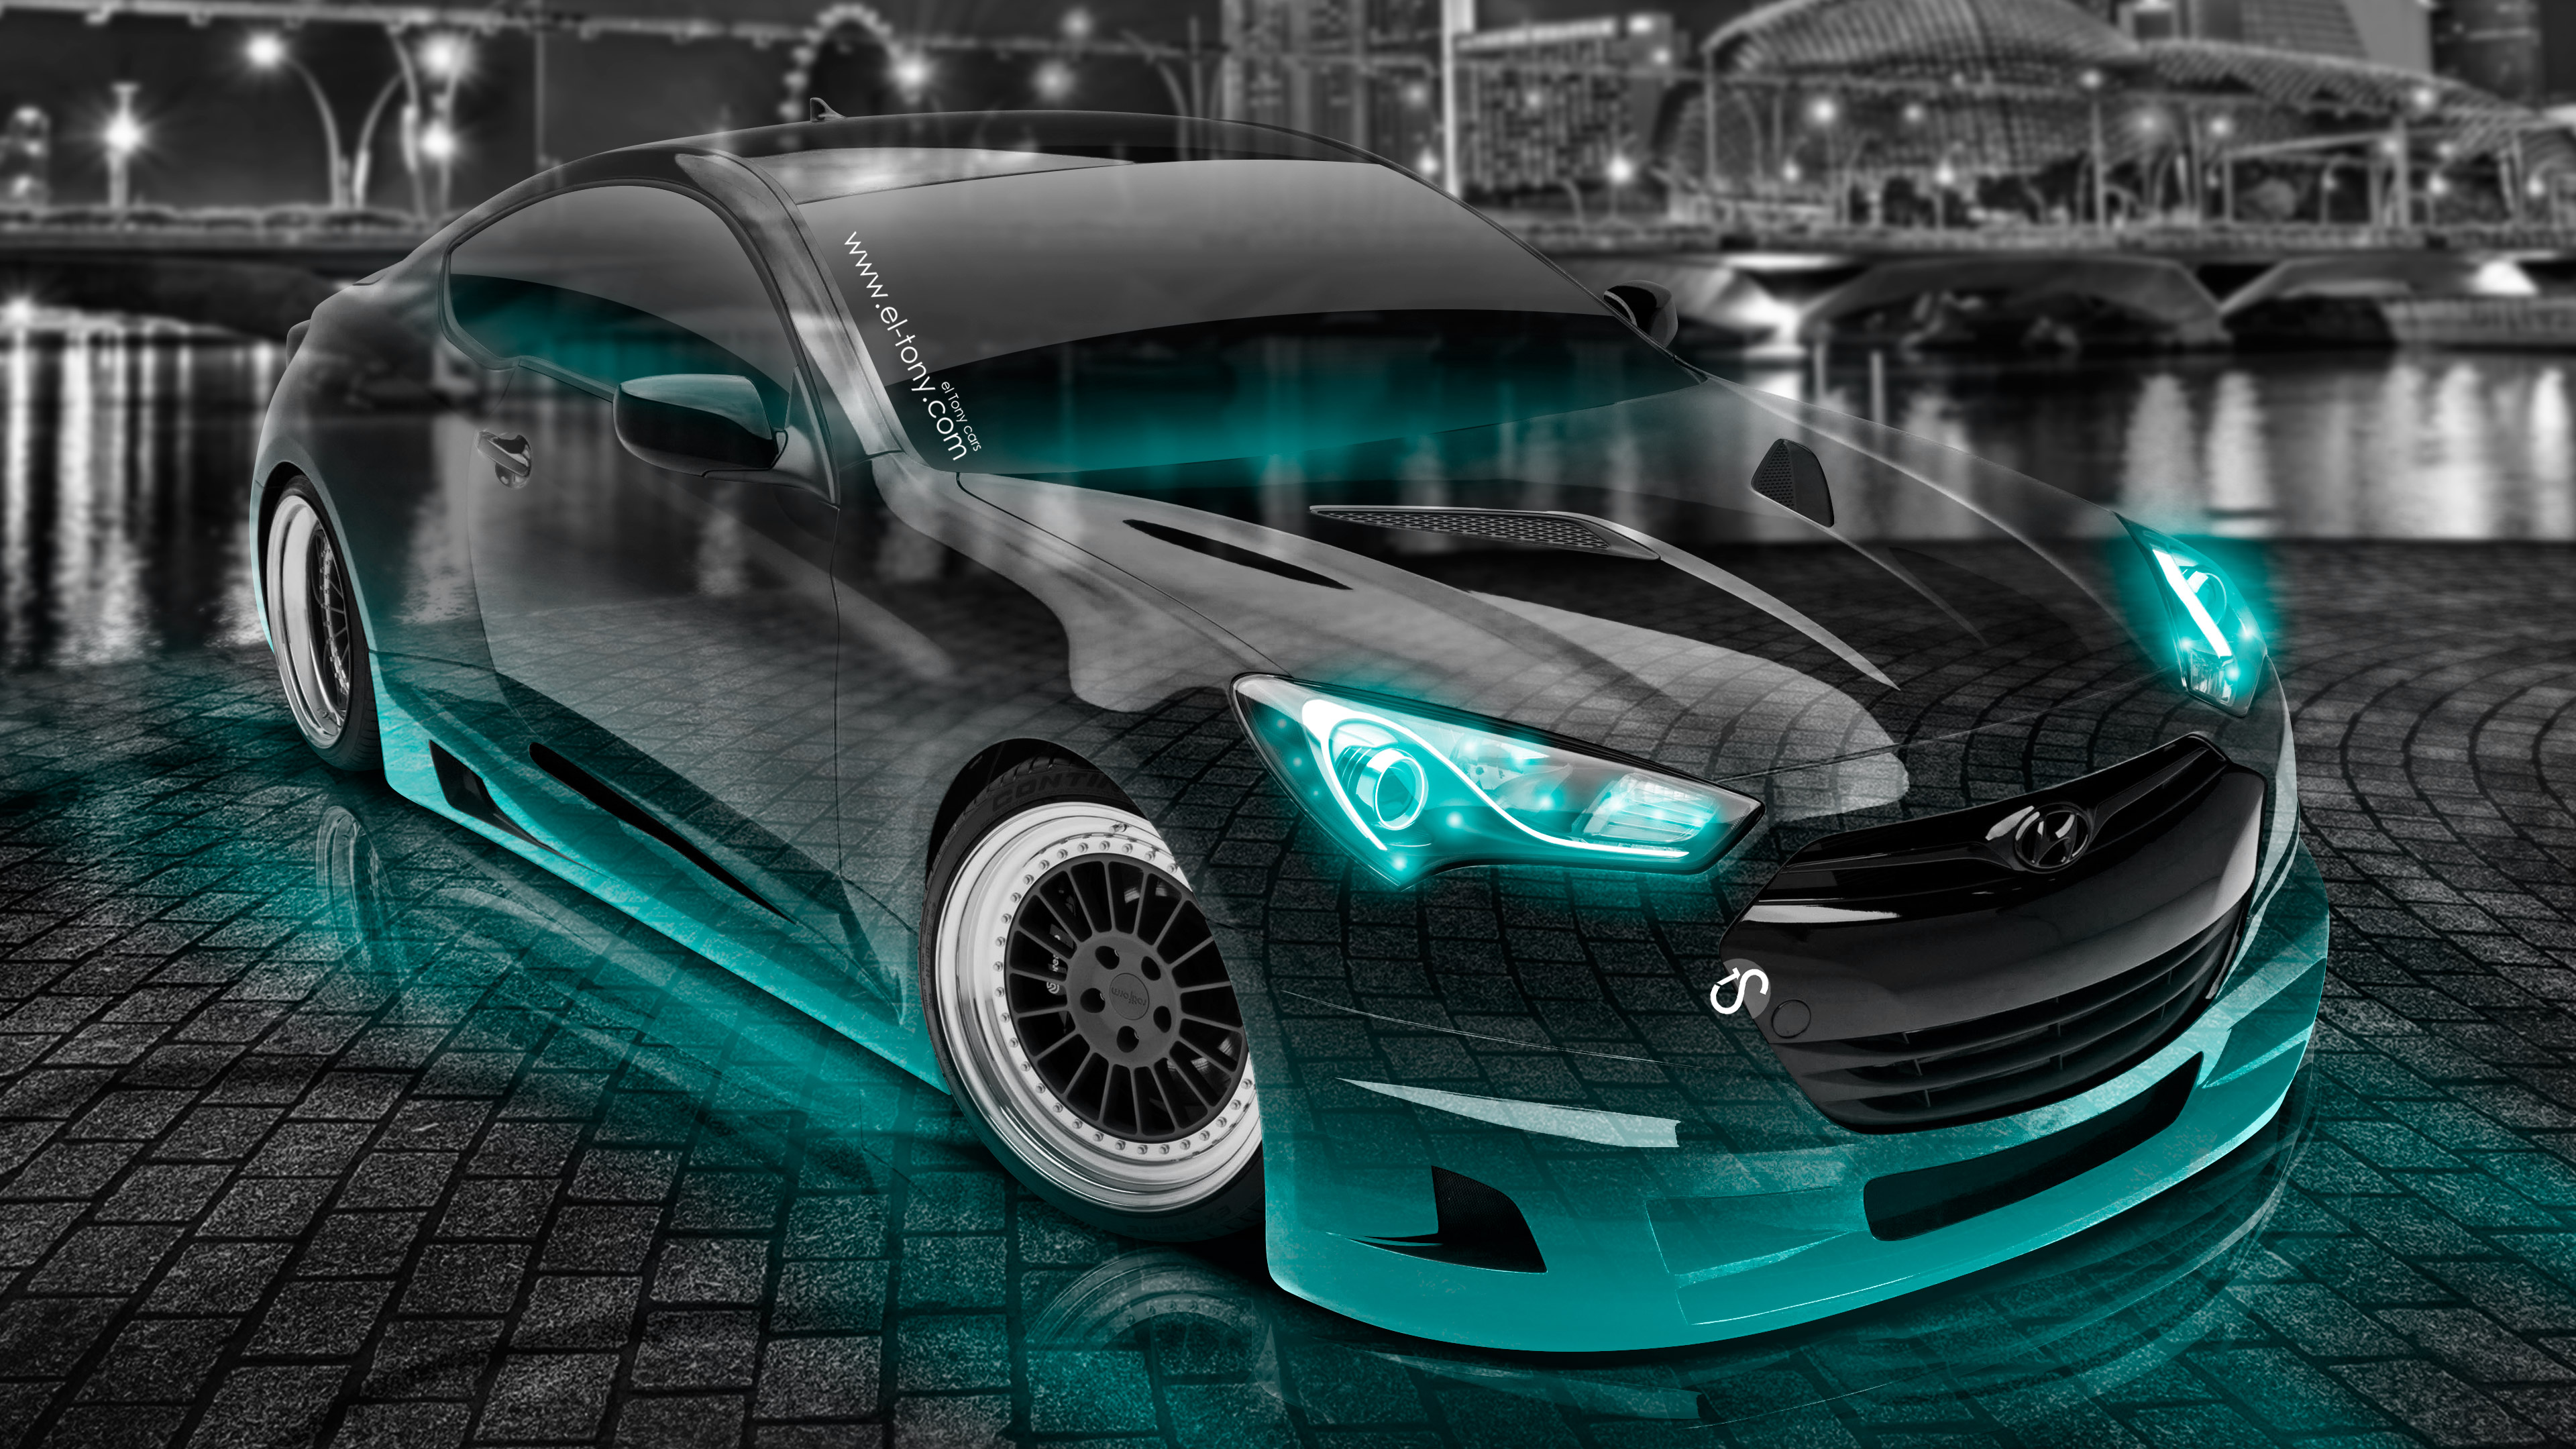 R35 | El Tony Nissan GTR R35 Front Fire Crystal City Car 2014 | El Tony